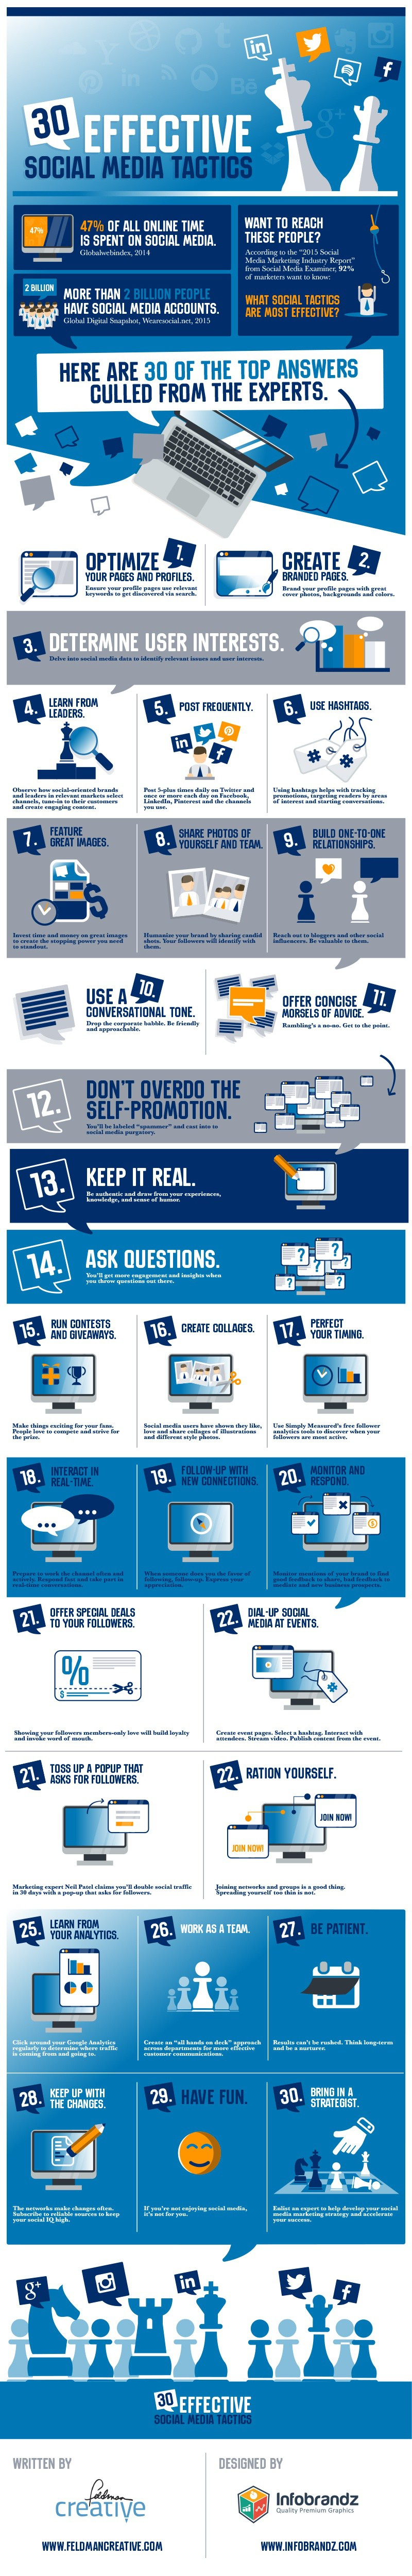 30 Effective Social Media Tactics Infographic